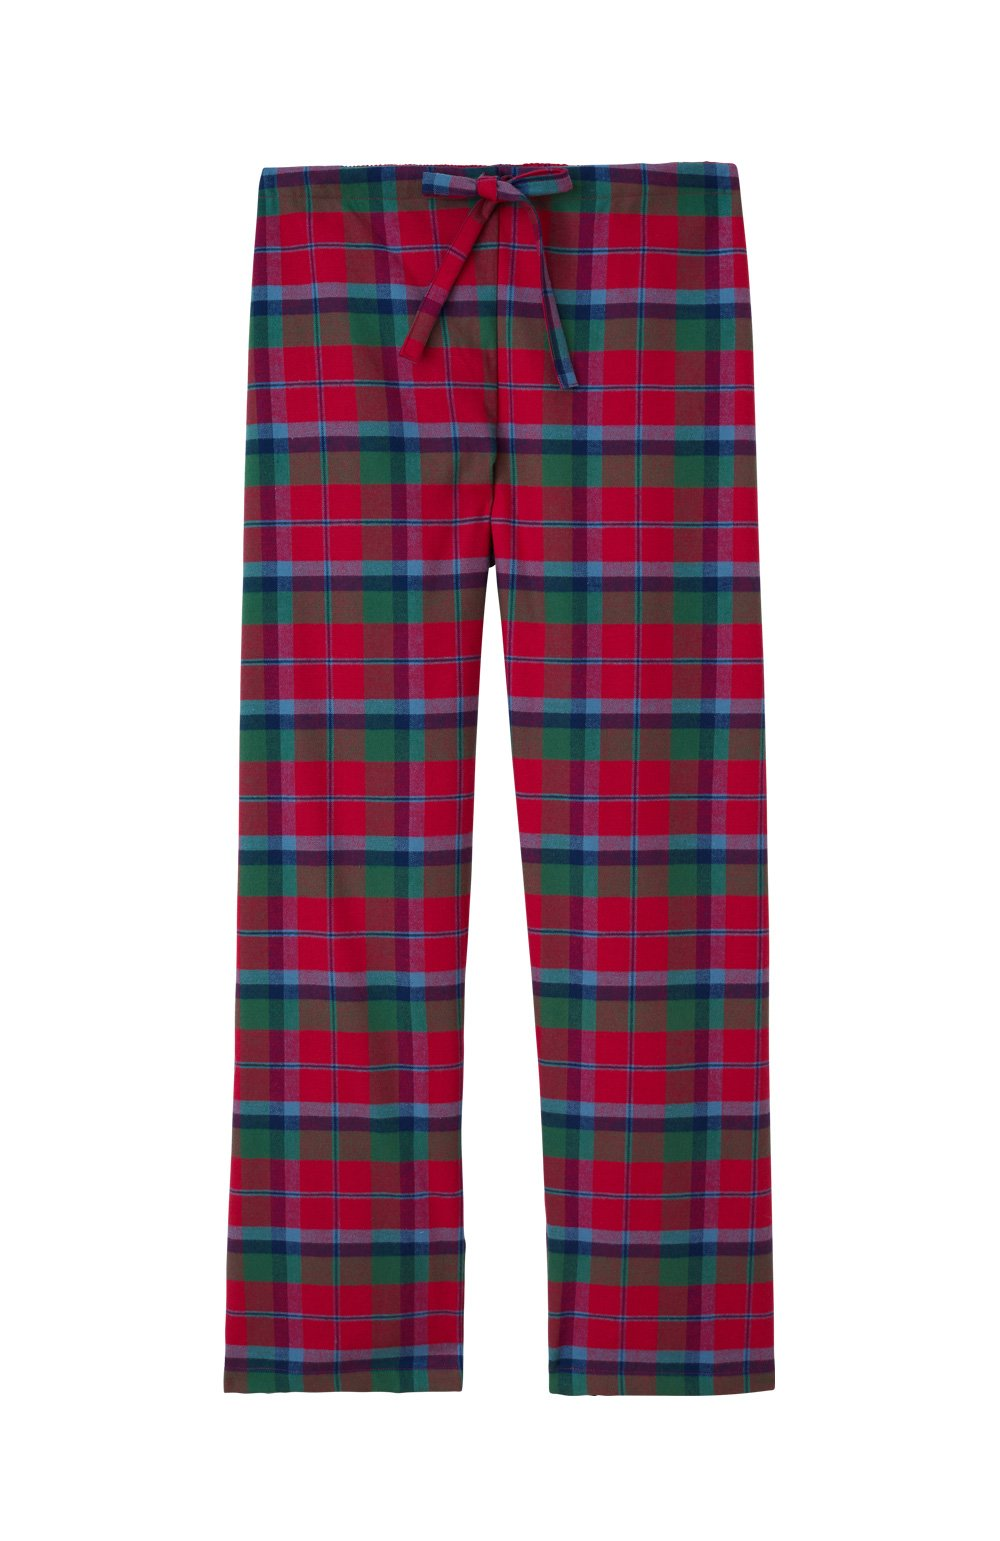 Brushed Cotton Moorland Heather Pyjama Trousers | Bonsoir of London